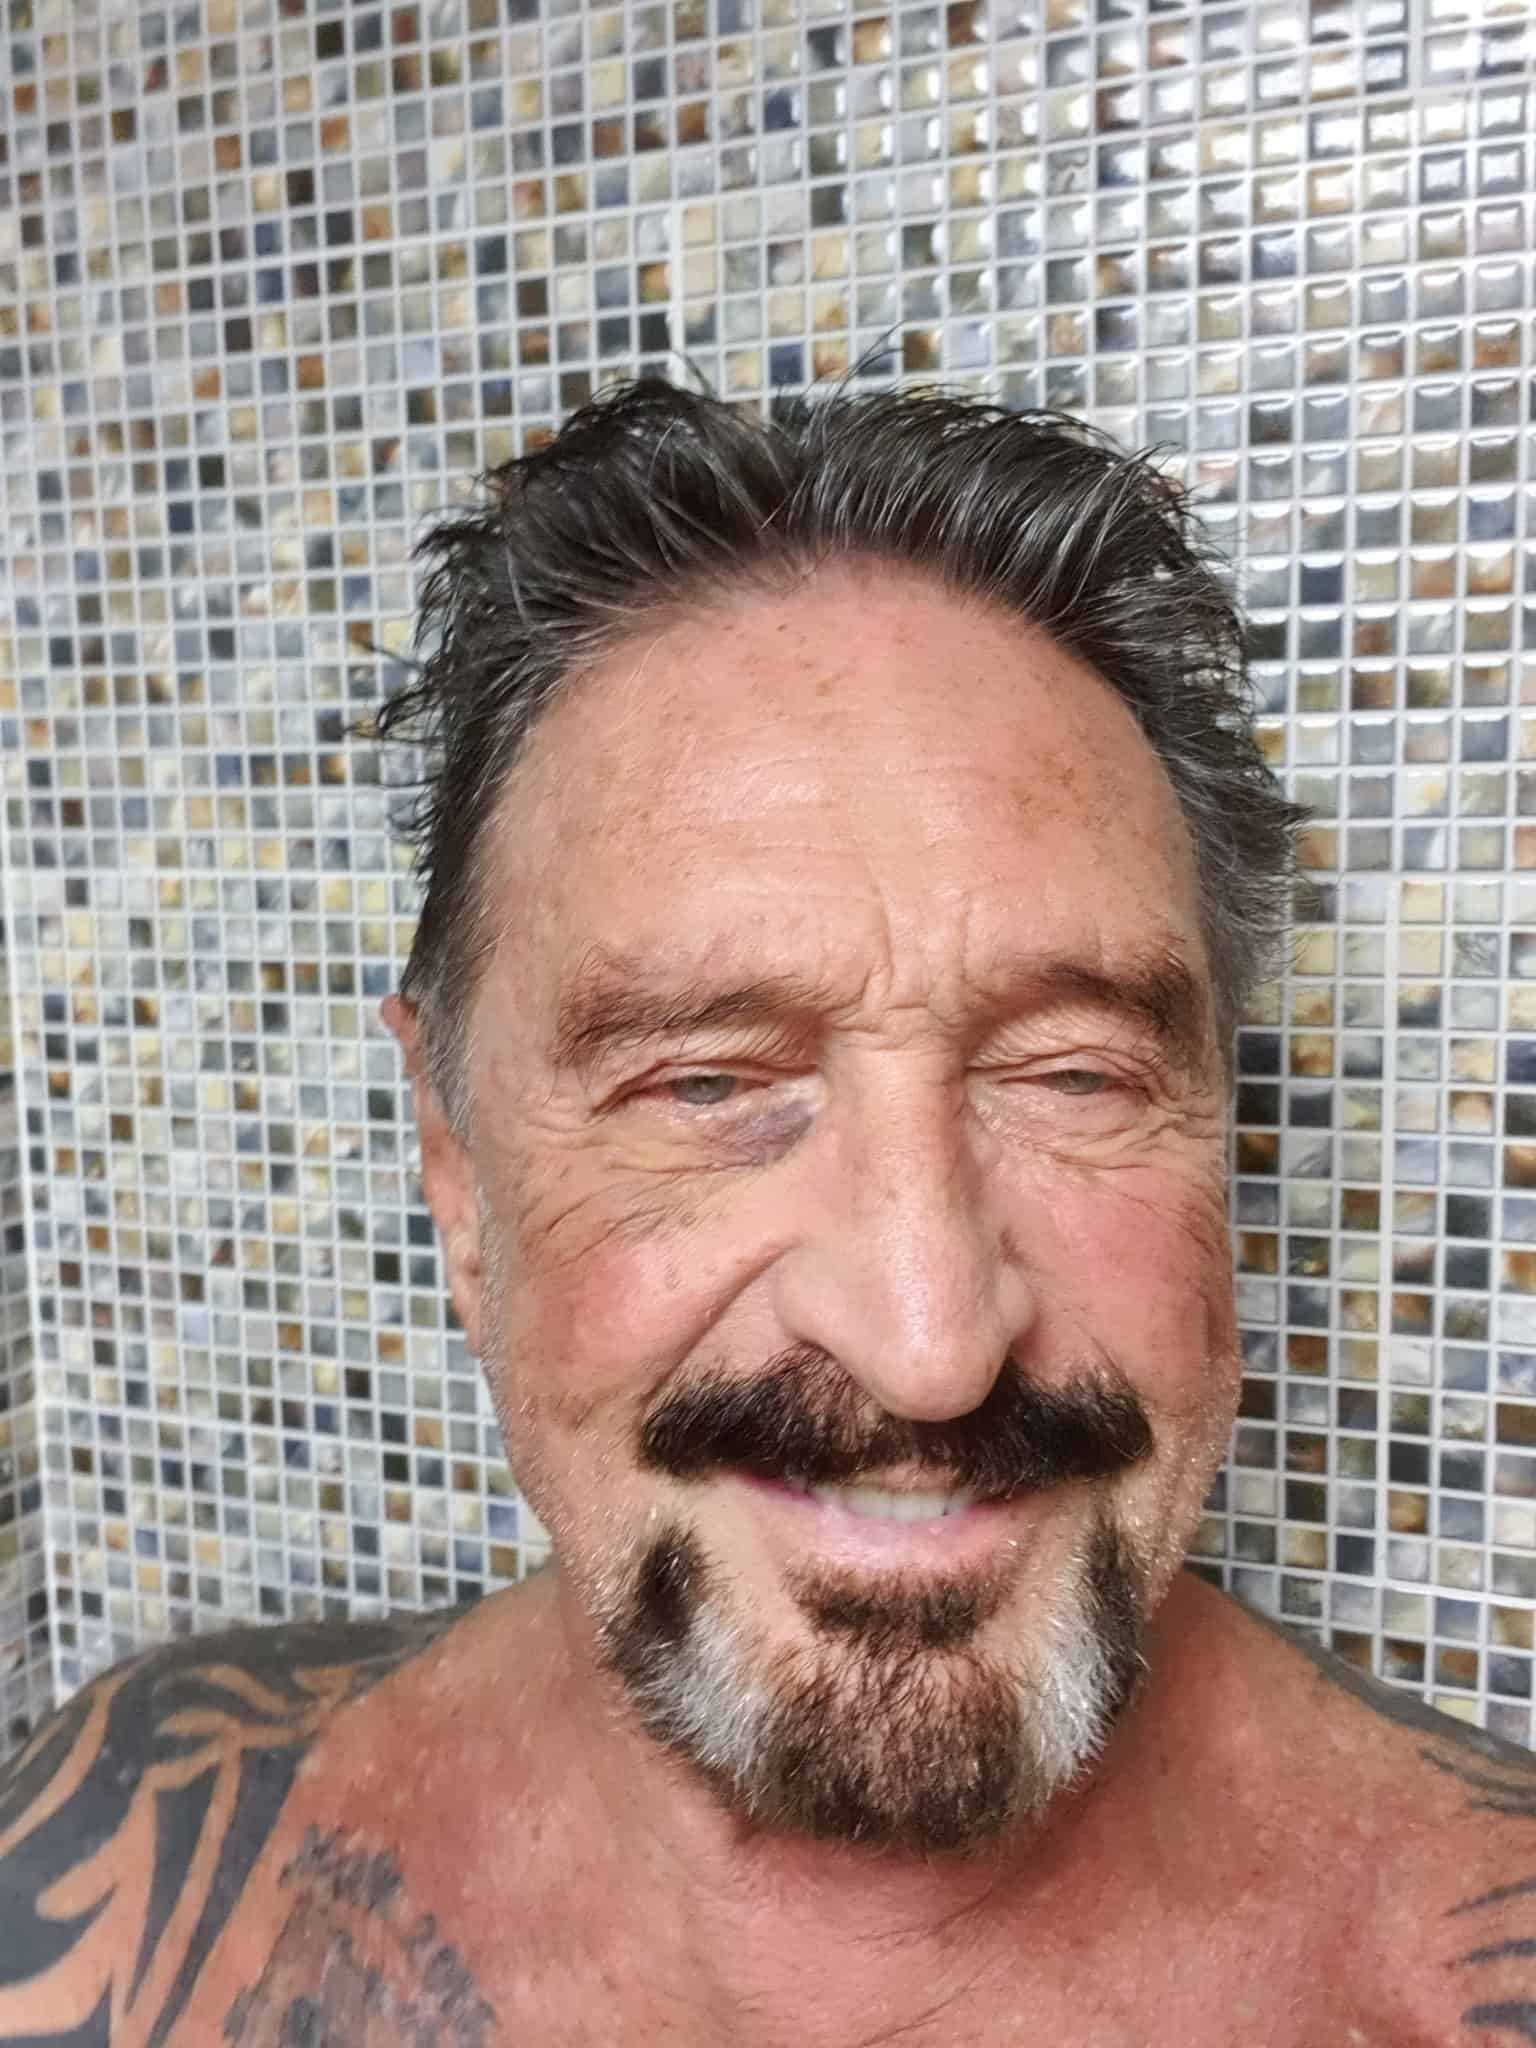 John McAfee Black Eye After Arrest. Source: Twitter